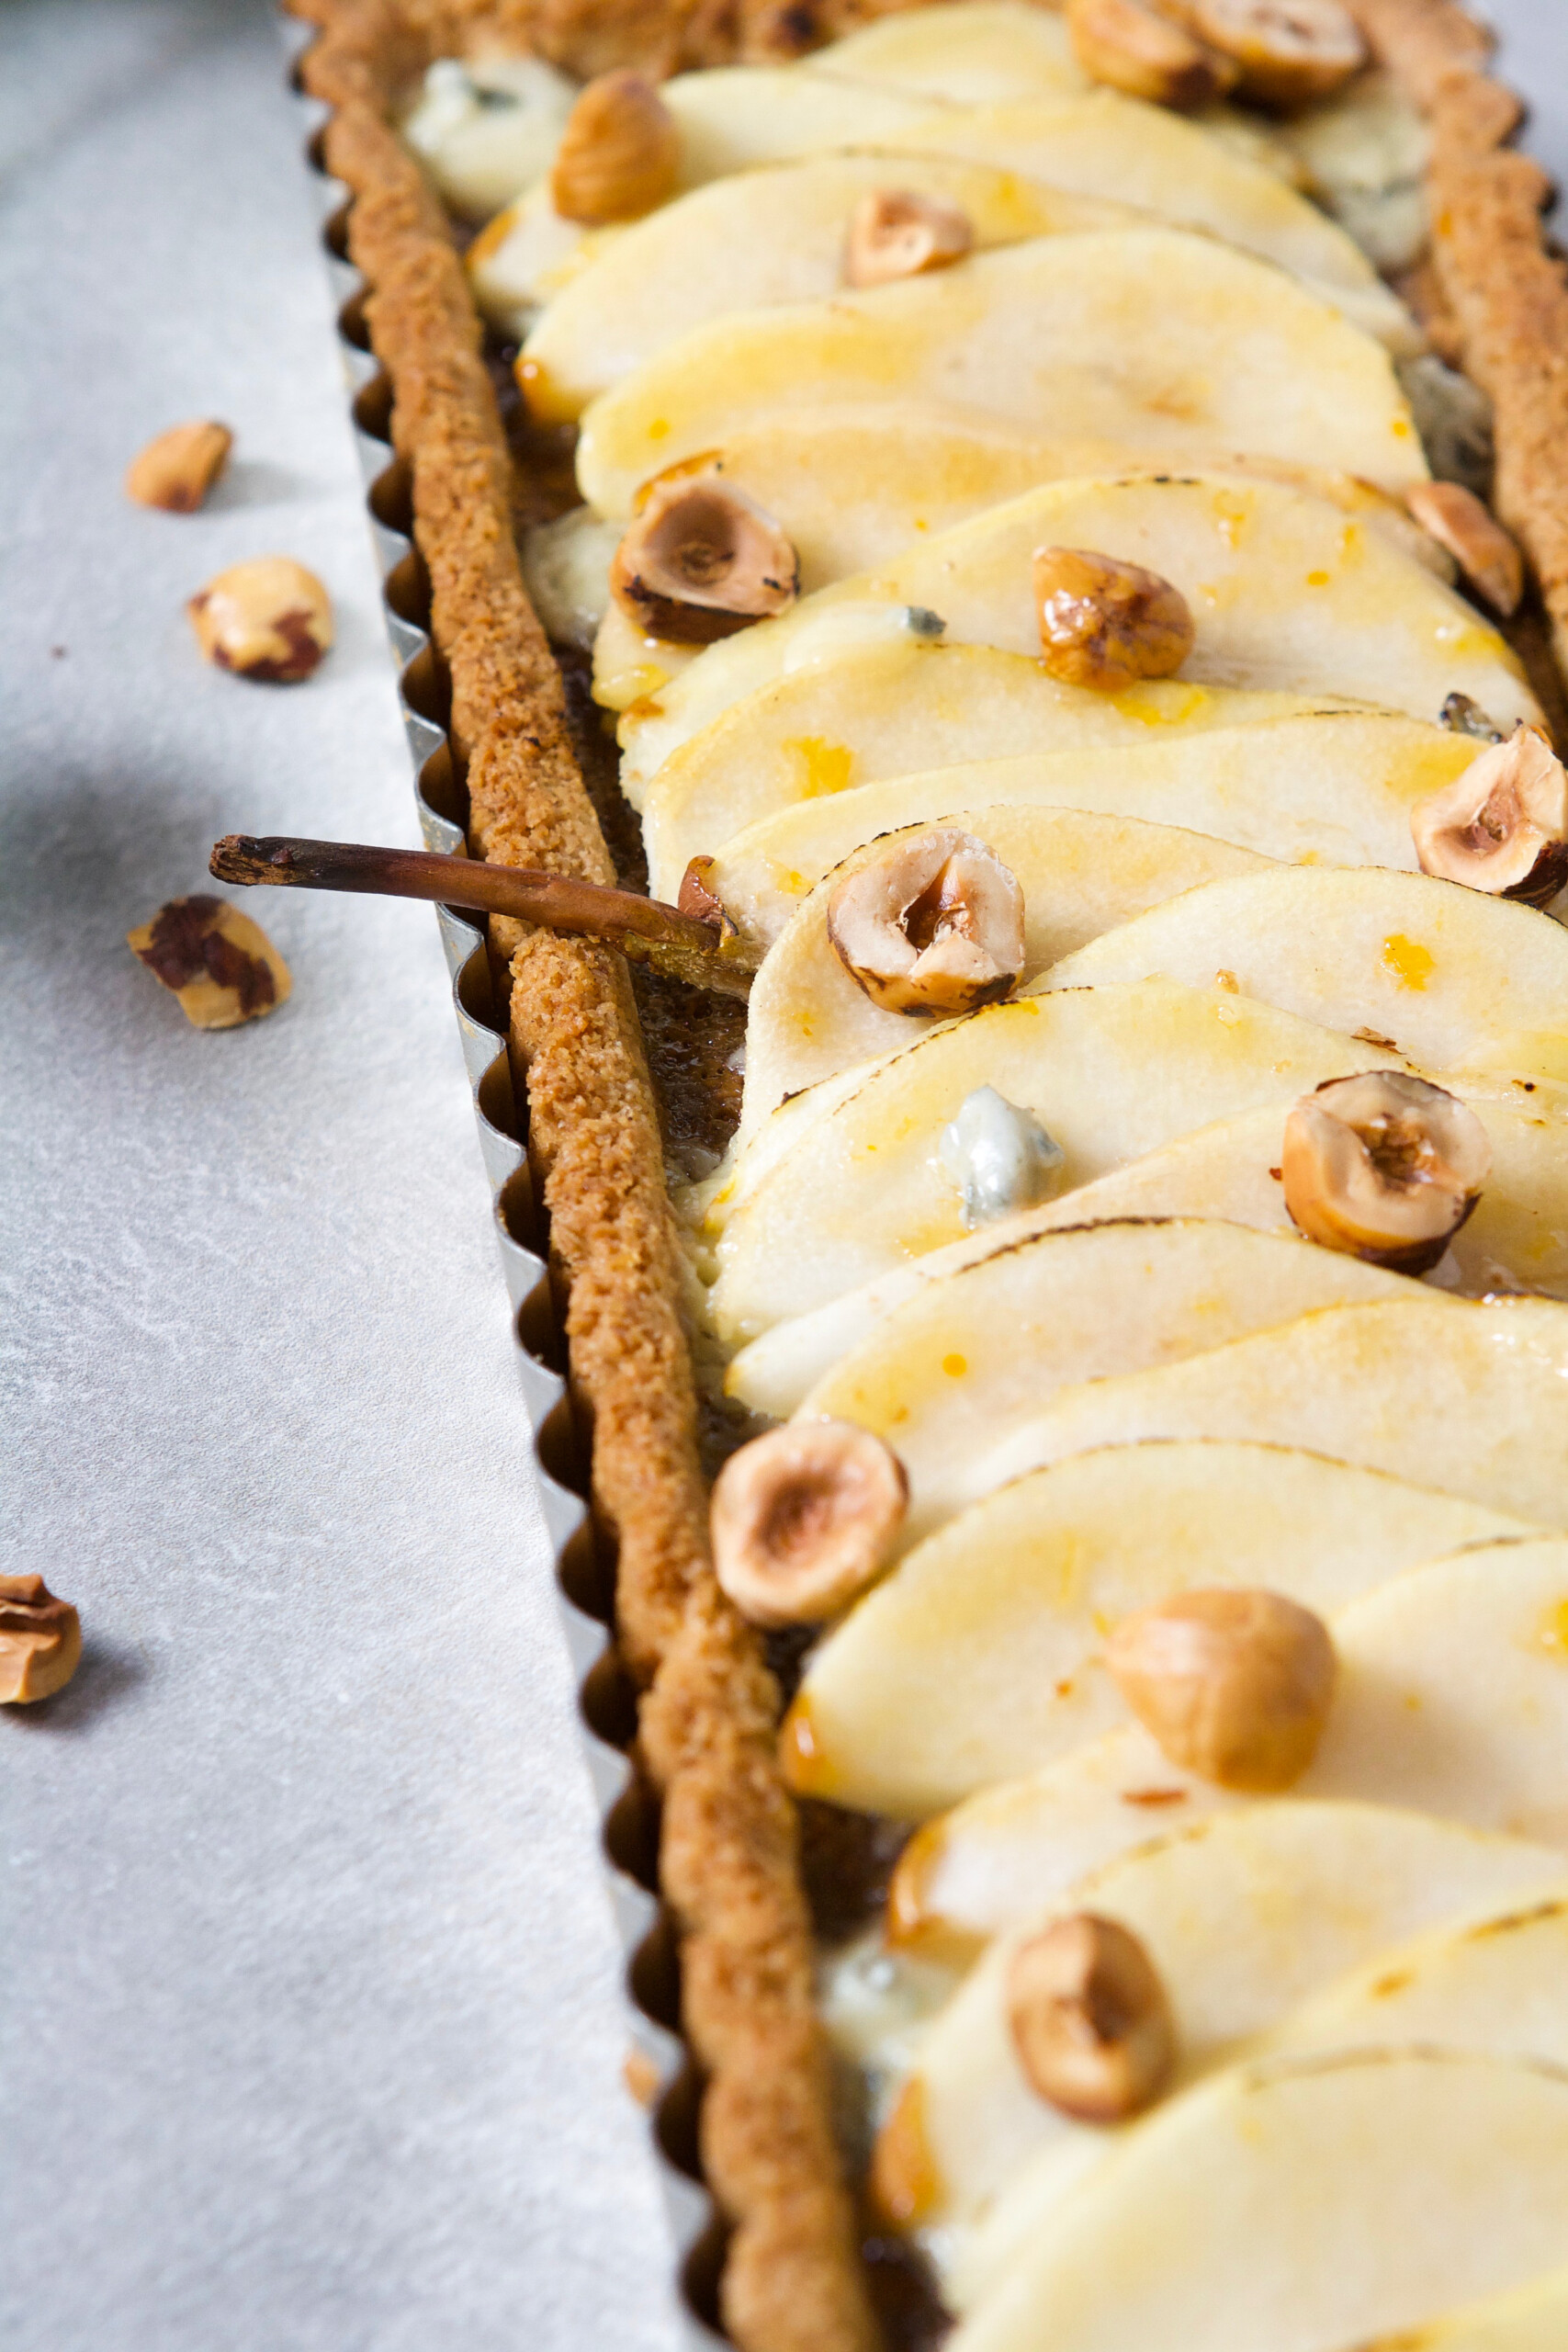 This Pear, Hazelnut and Blue Cheese Tart has everything going for it. It's nutty, lightly sweetened, and just a touch of salty, making it a perfect treat to finish off any meal. | Zestful Kitchen